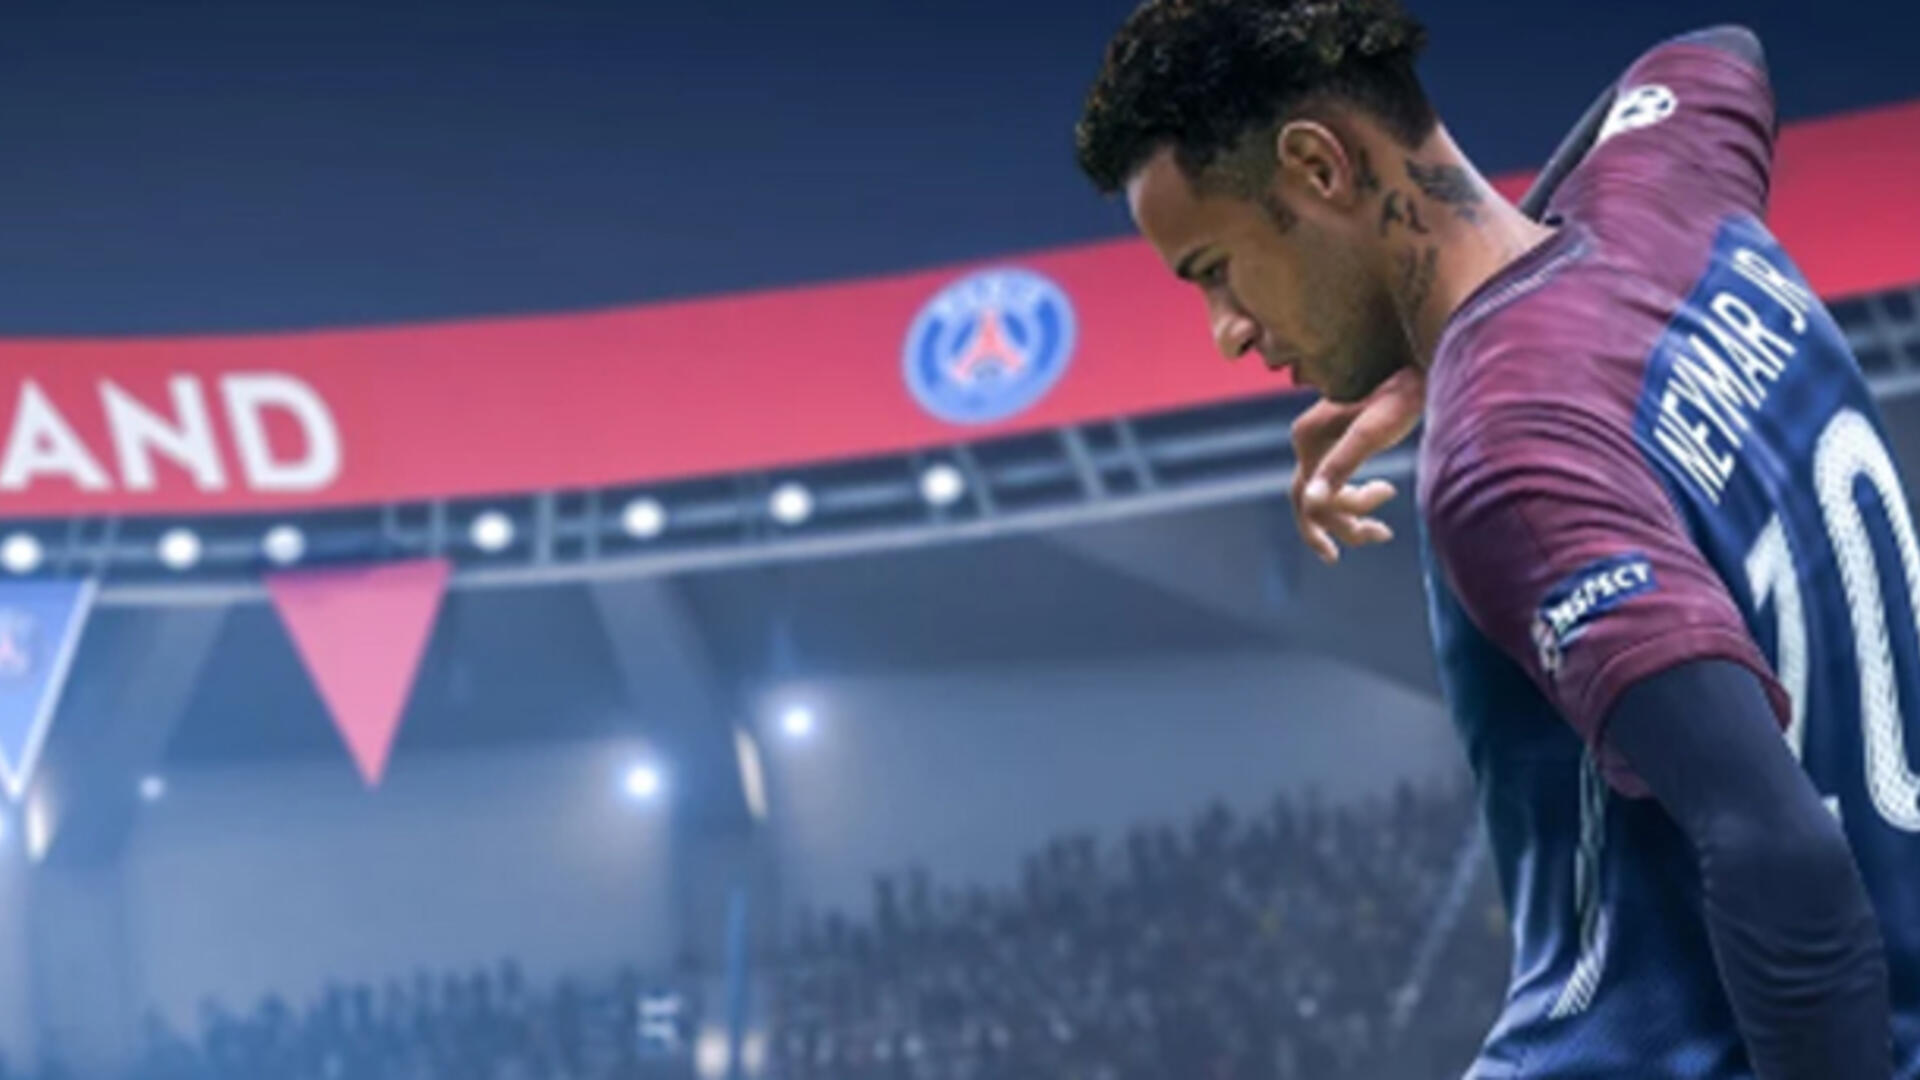 FIFA 19 Switch vs Xbox One Graphics Comparison Reveals a Quietly Strong Port